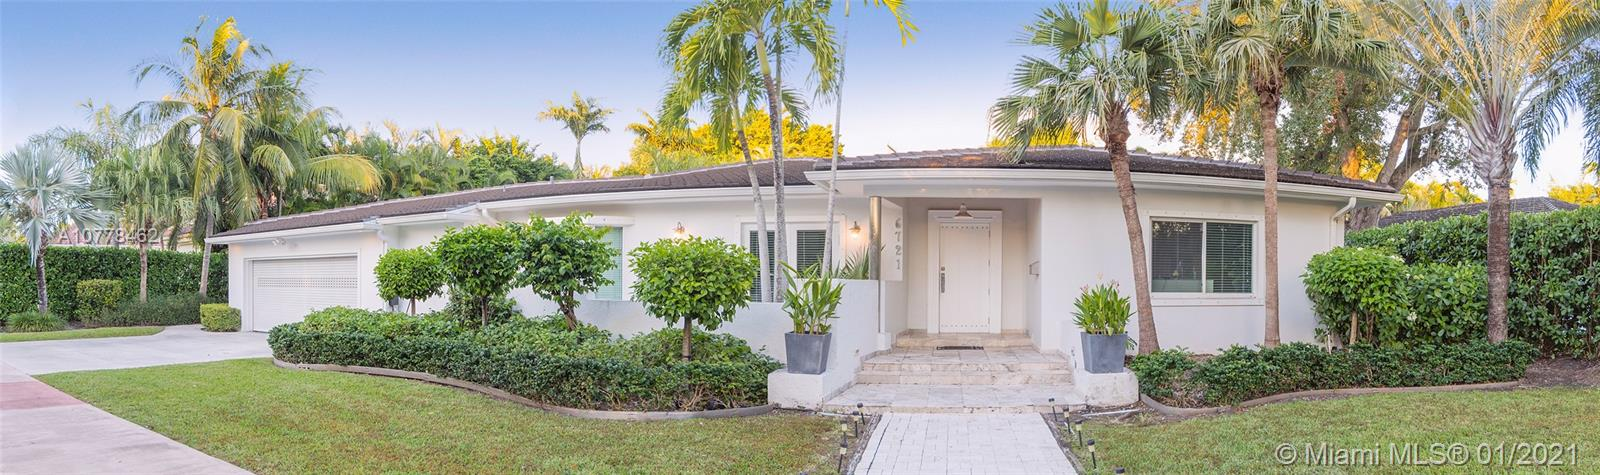 Come enjoy this updated 5 Bedroom, 5 Bathroom home in South Gables that sits on an almost 14,000 sq foot lot. This home has a great layout, with living/dining areas looking out over the pool. Kitchen has stainless steel appliances, granite counter tops & custom wood cabinets. Kitchen is open to the family room. All bedrooms have built out closets. The roof of the home was replaced in 2017 and two new AC units were installed this year. Shows great, bring your client for a private viewing.